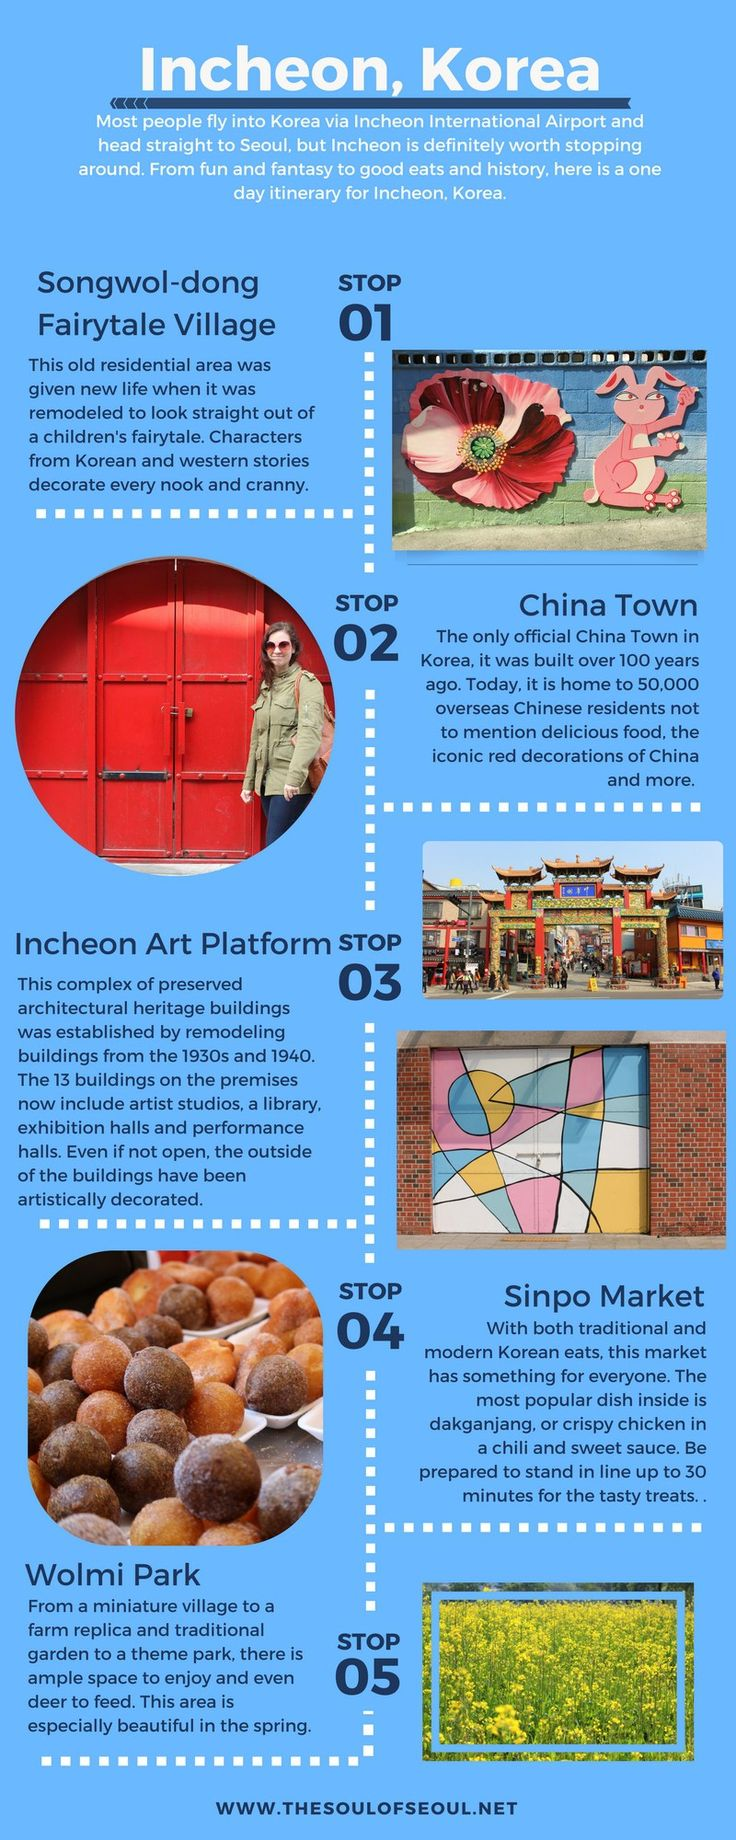 The Soul of Seoul: Incheon, Korea: One Day Itinerary: From China Town to Street Art, Good Eats and More.